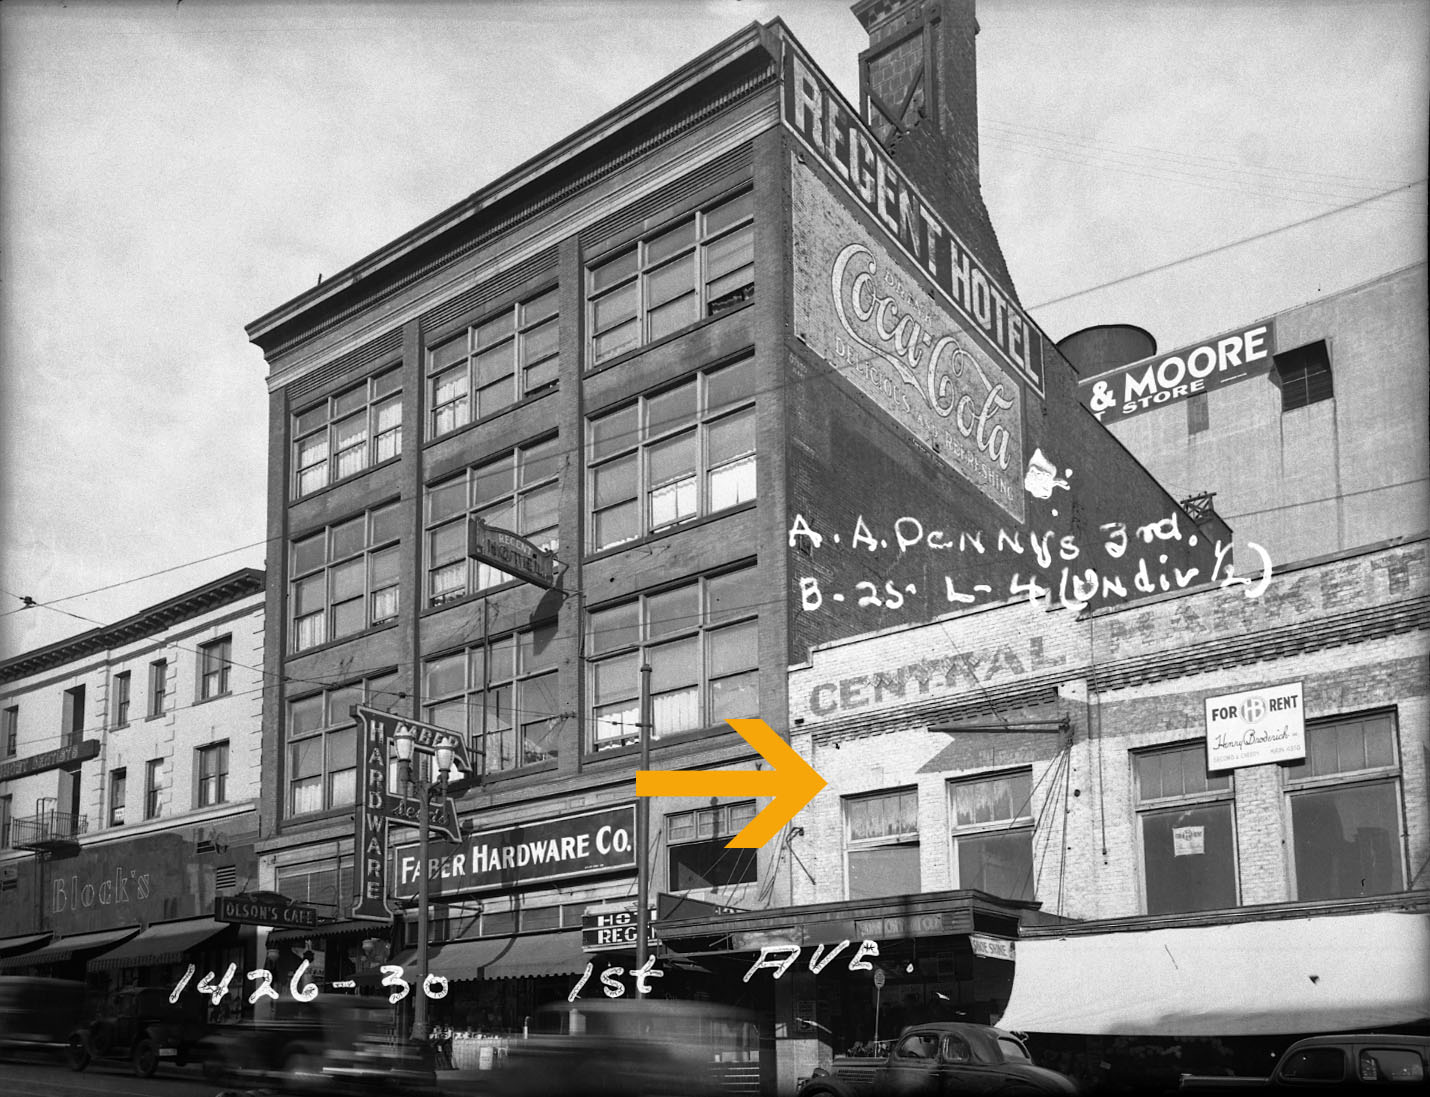 1937- site of the future Showbox in the Central Market building. Photo from Puget Sound Regional Archives.